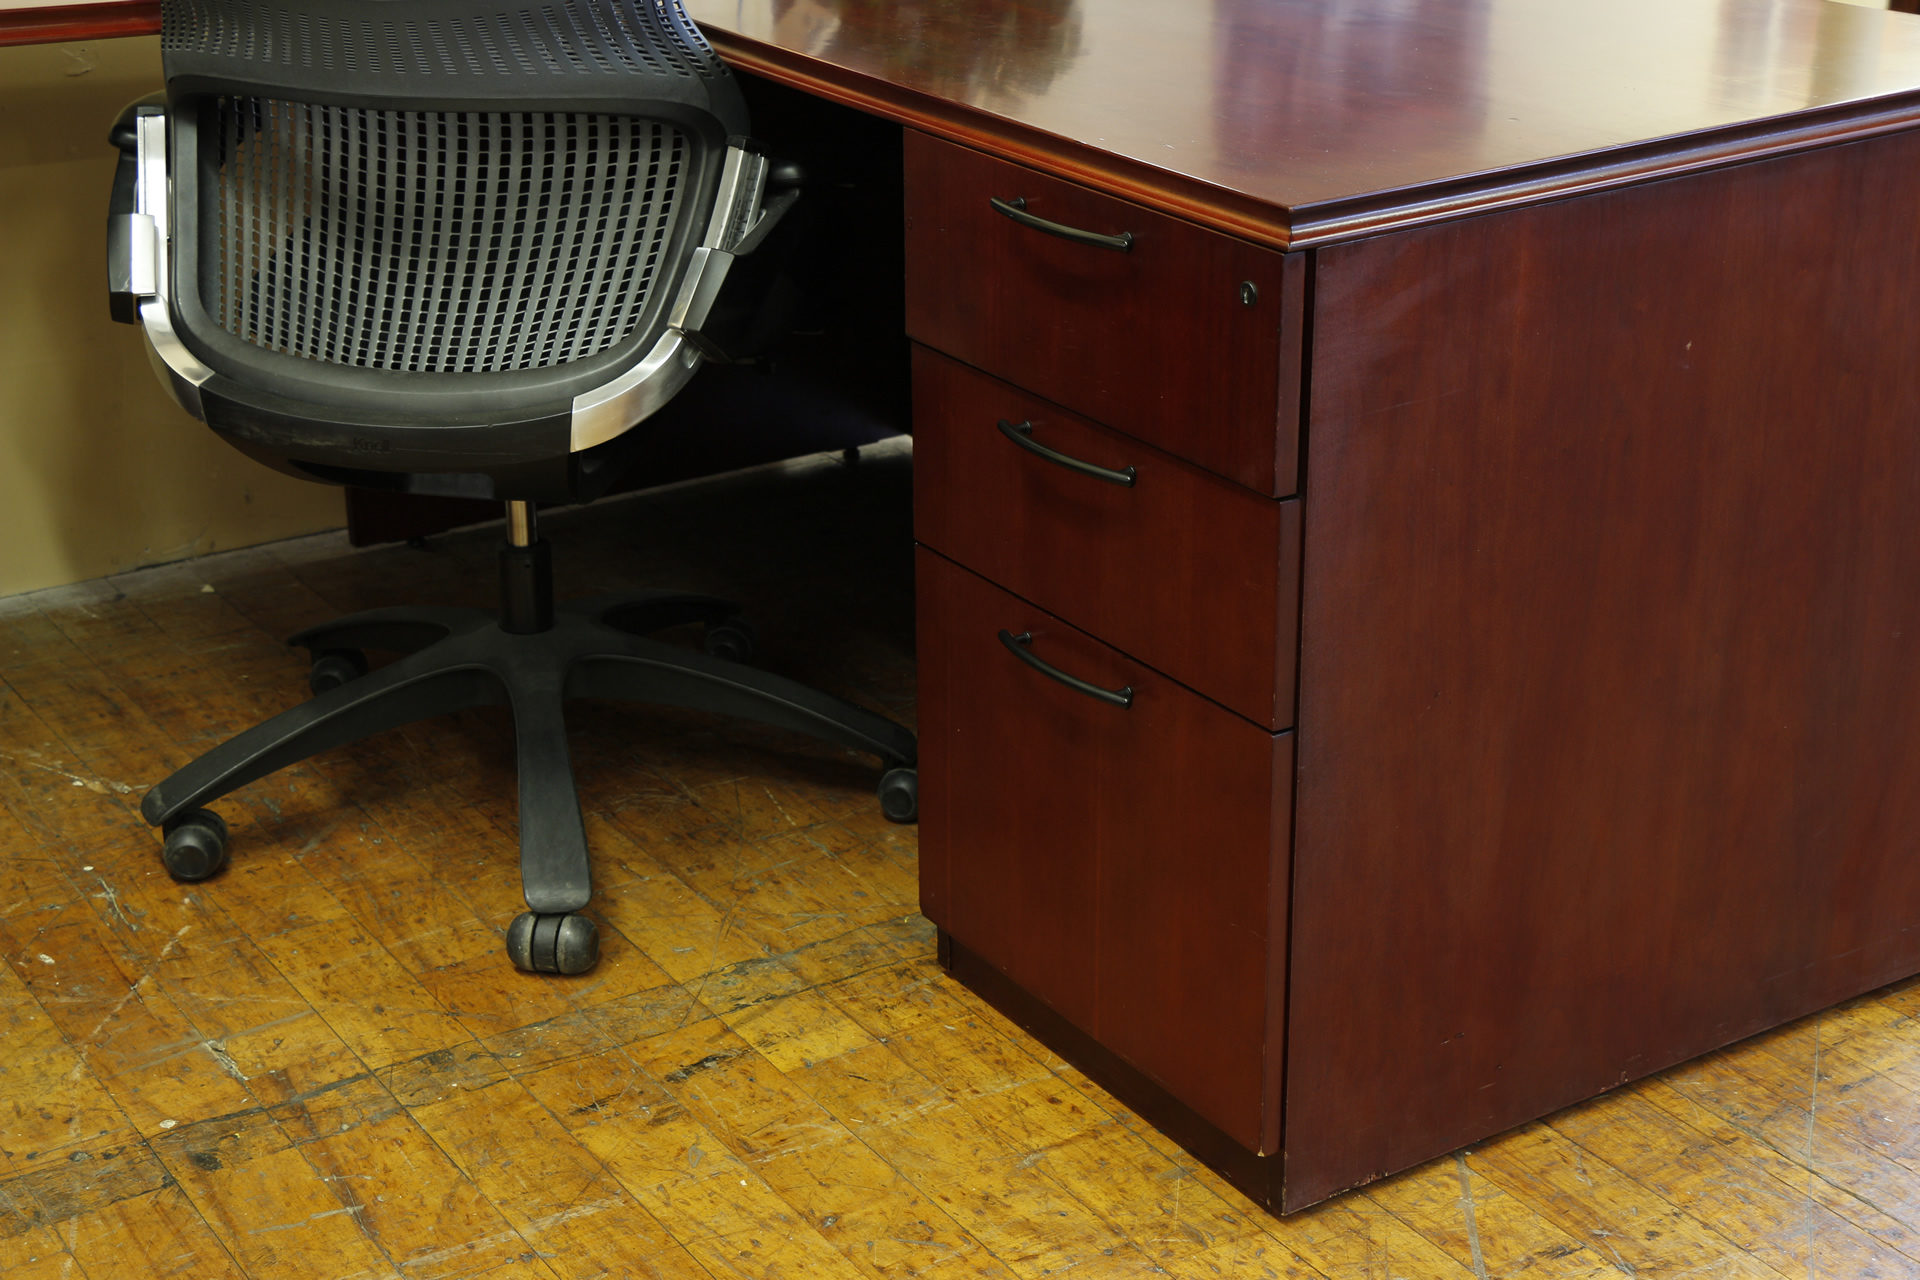 peartreeofficefurniture_peartreeofficefurniture_mg_4220.jpg